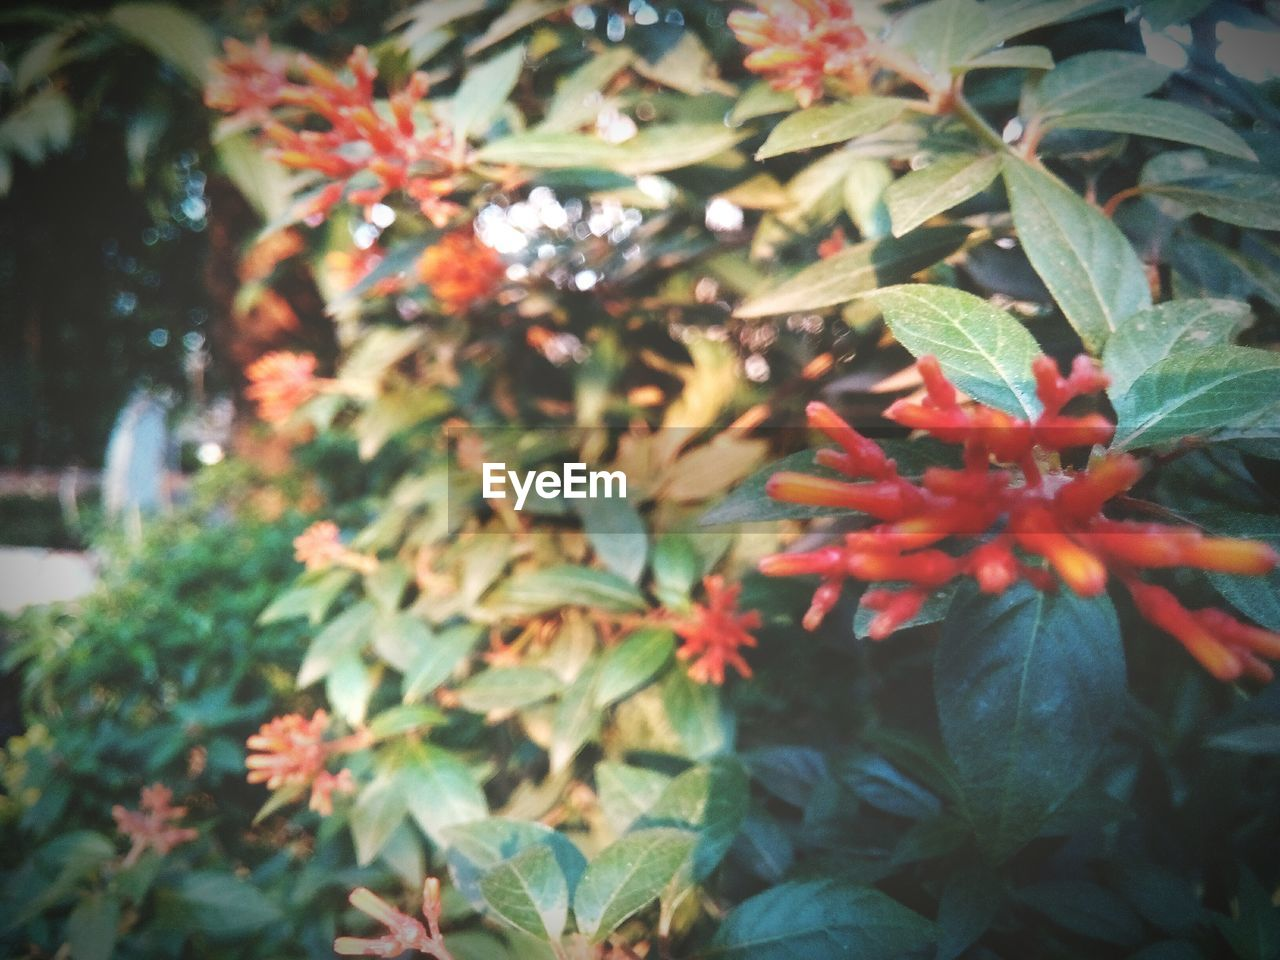 leaf, growth, nature, red, no people, day, tree, plant, outdoors, beauty in nature, freshness, close-up